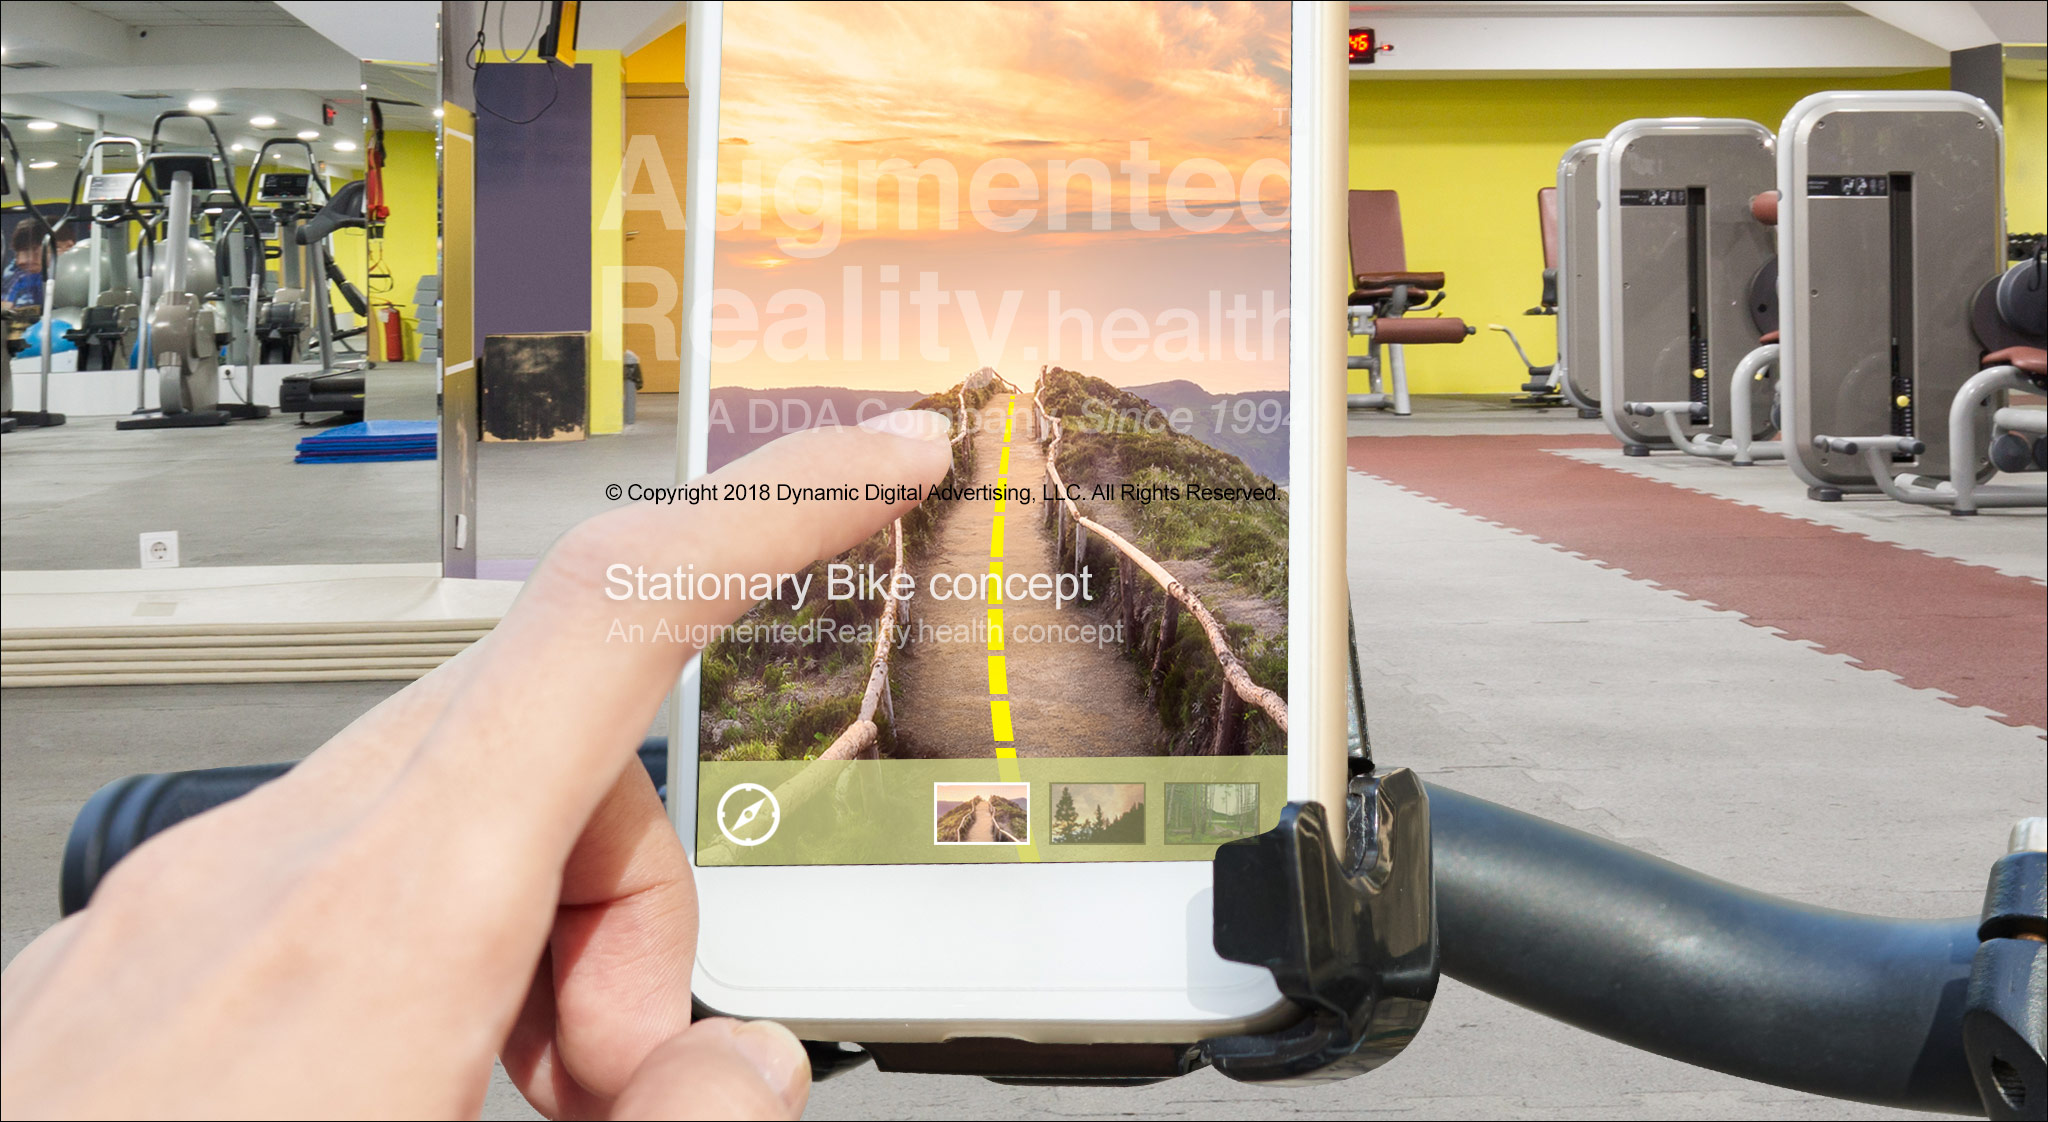 Stationary Bike Travel Augmented Reality Application